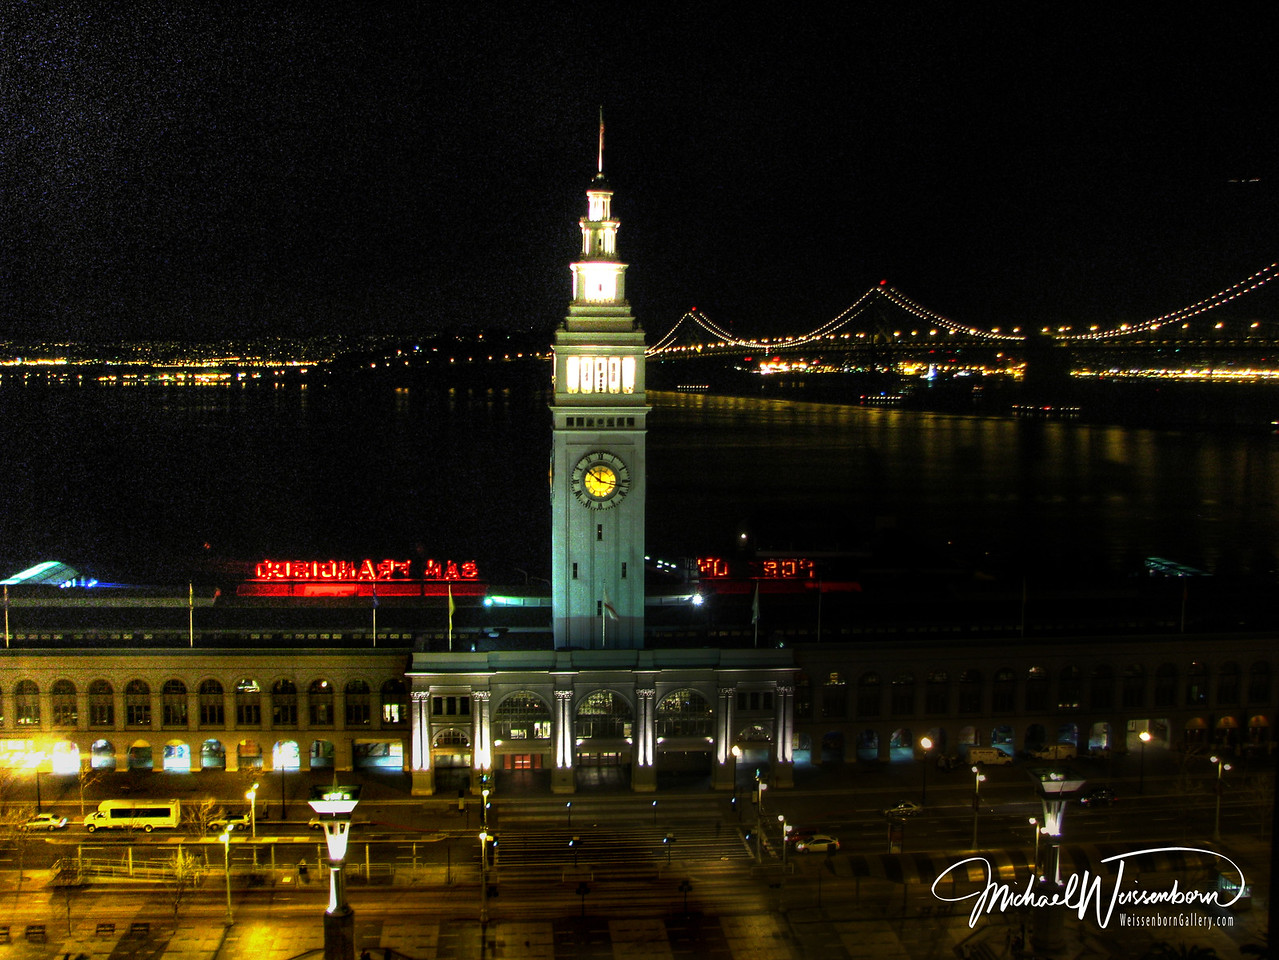 Ferry Building 10:00 pm